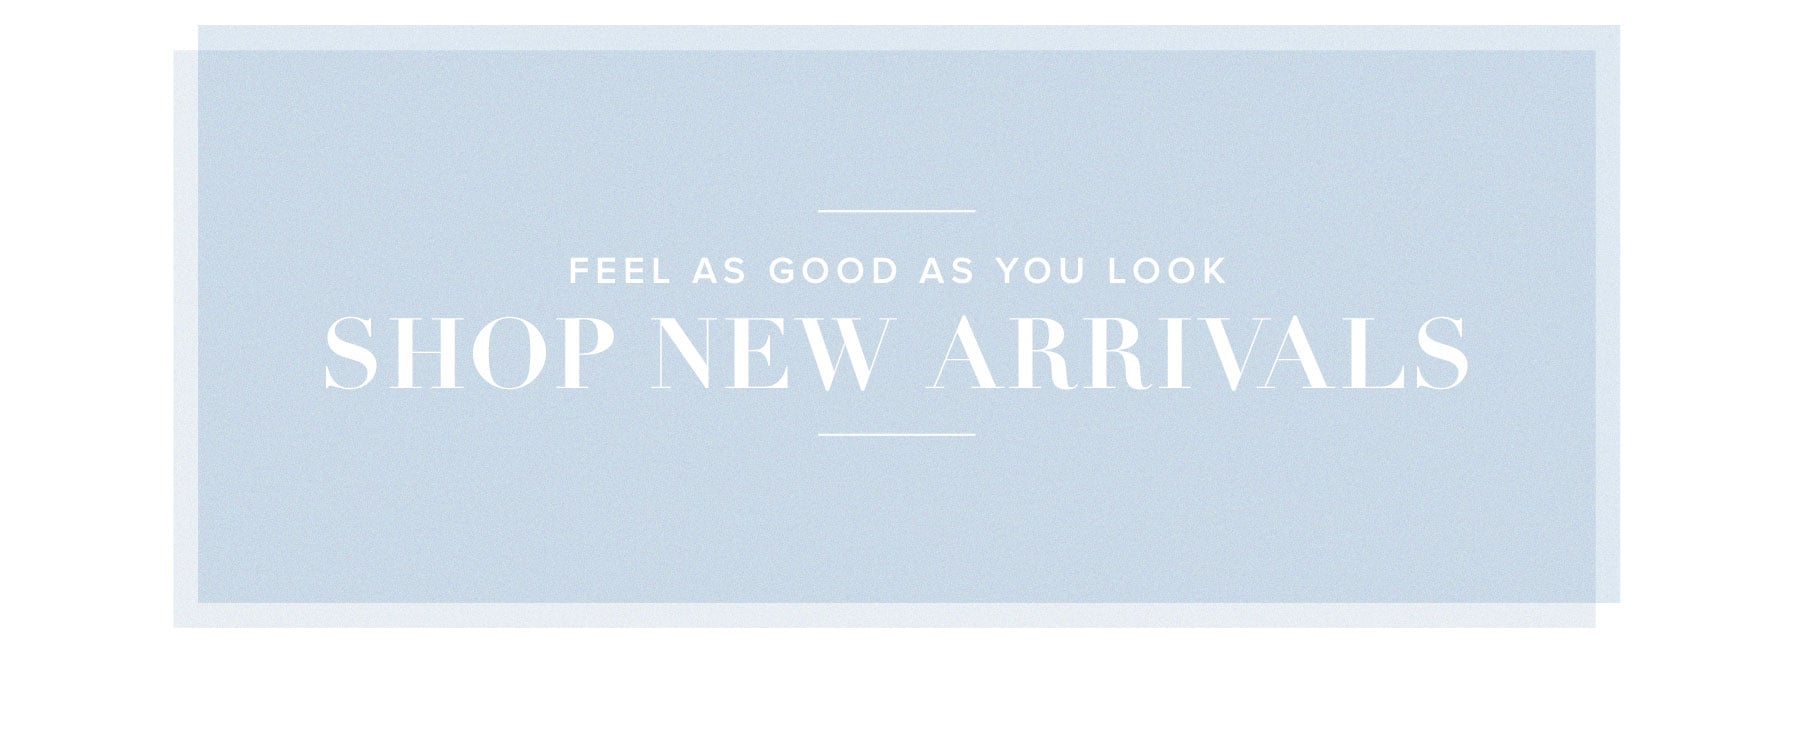 Feel as good as you look. Shop New Arrivals.